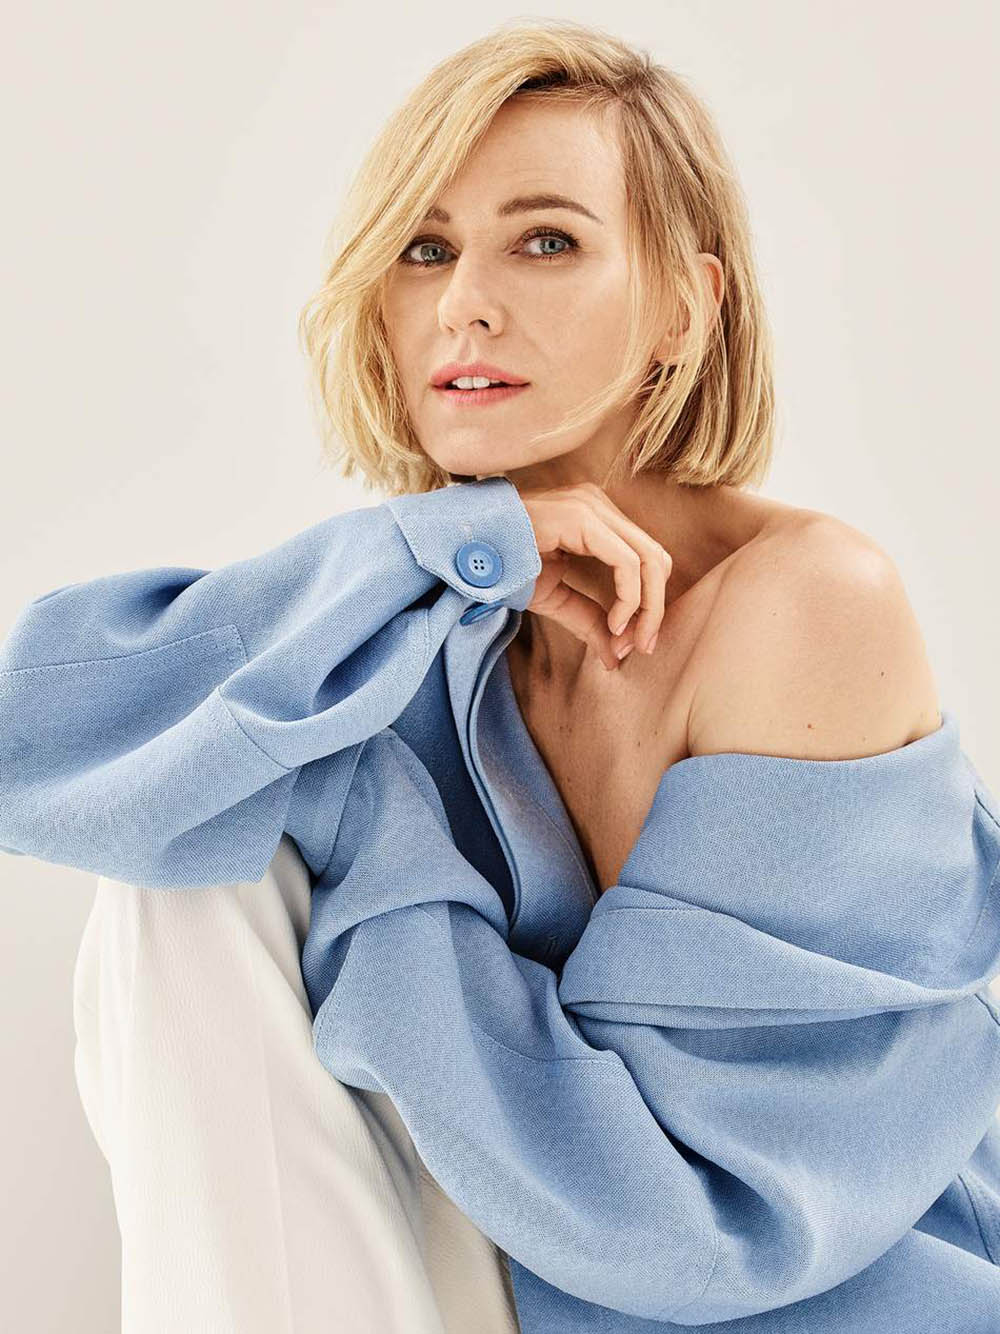 Naomi Watts covers Porter Edit August 2nd, 2019 by Jason Kibbler